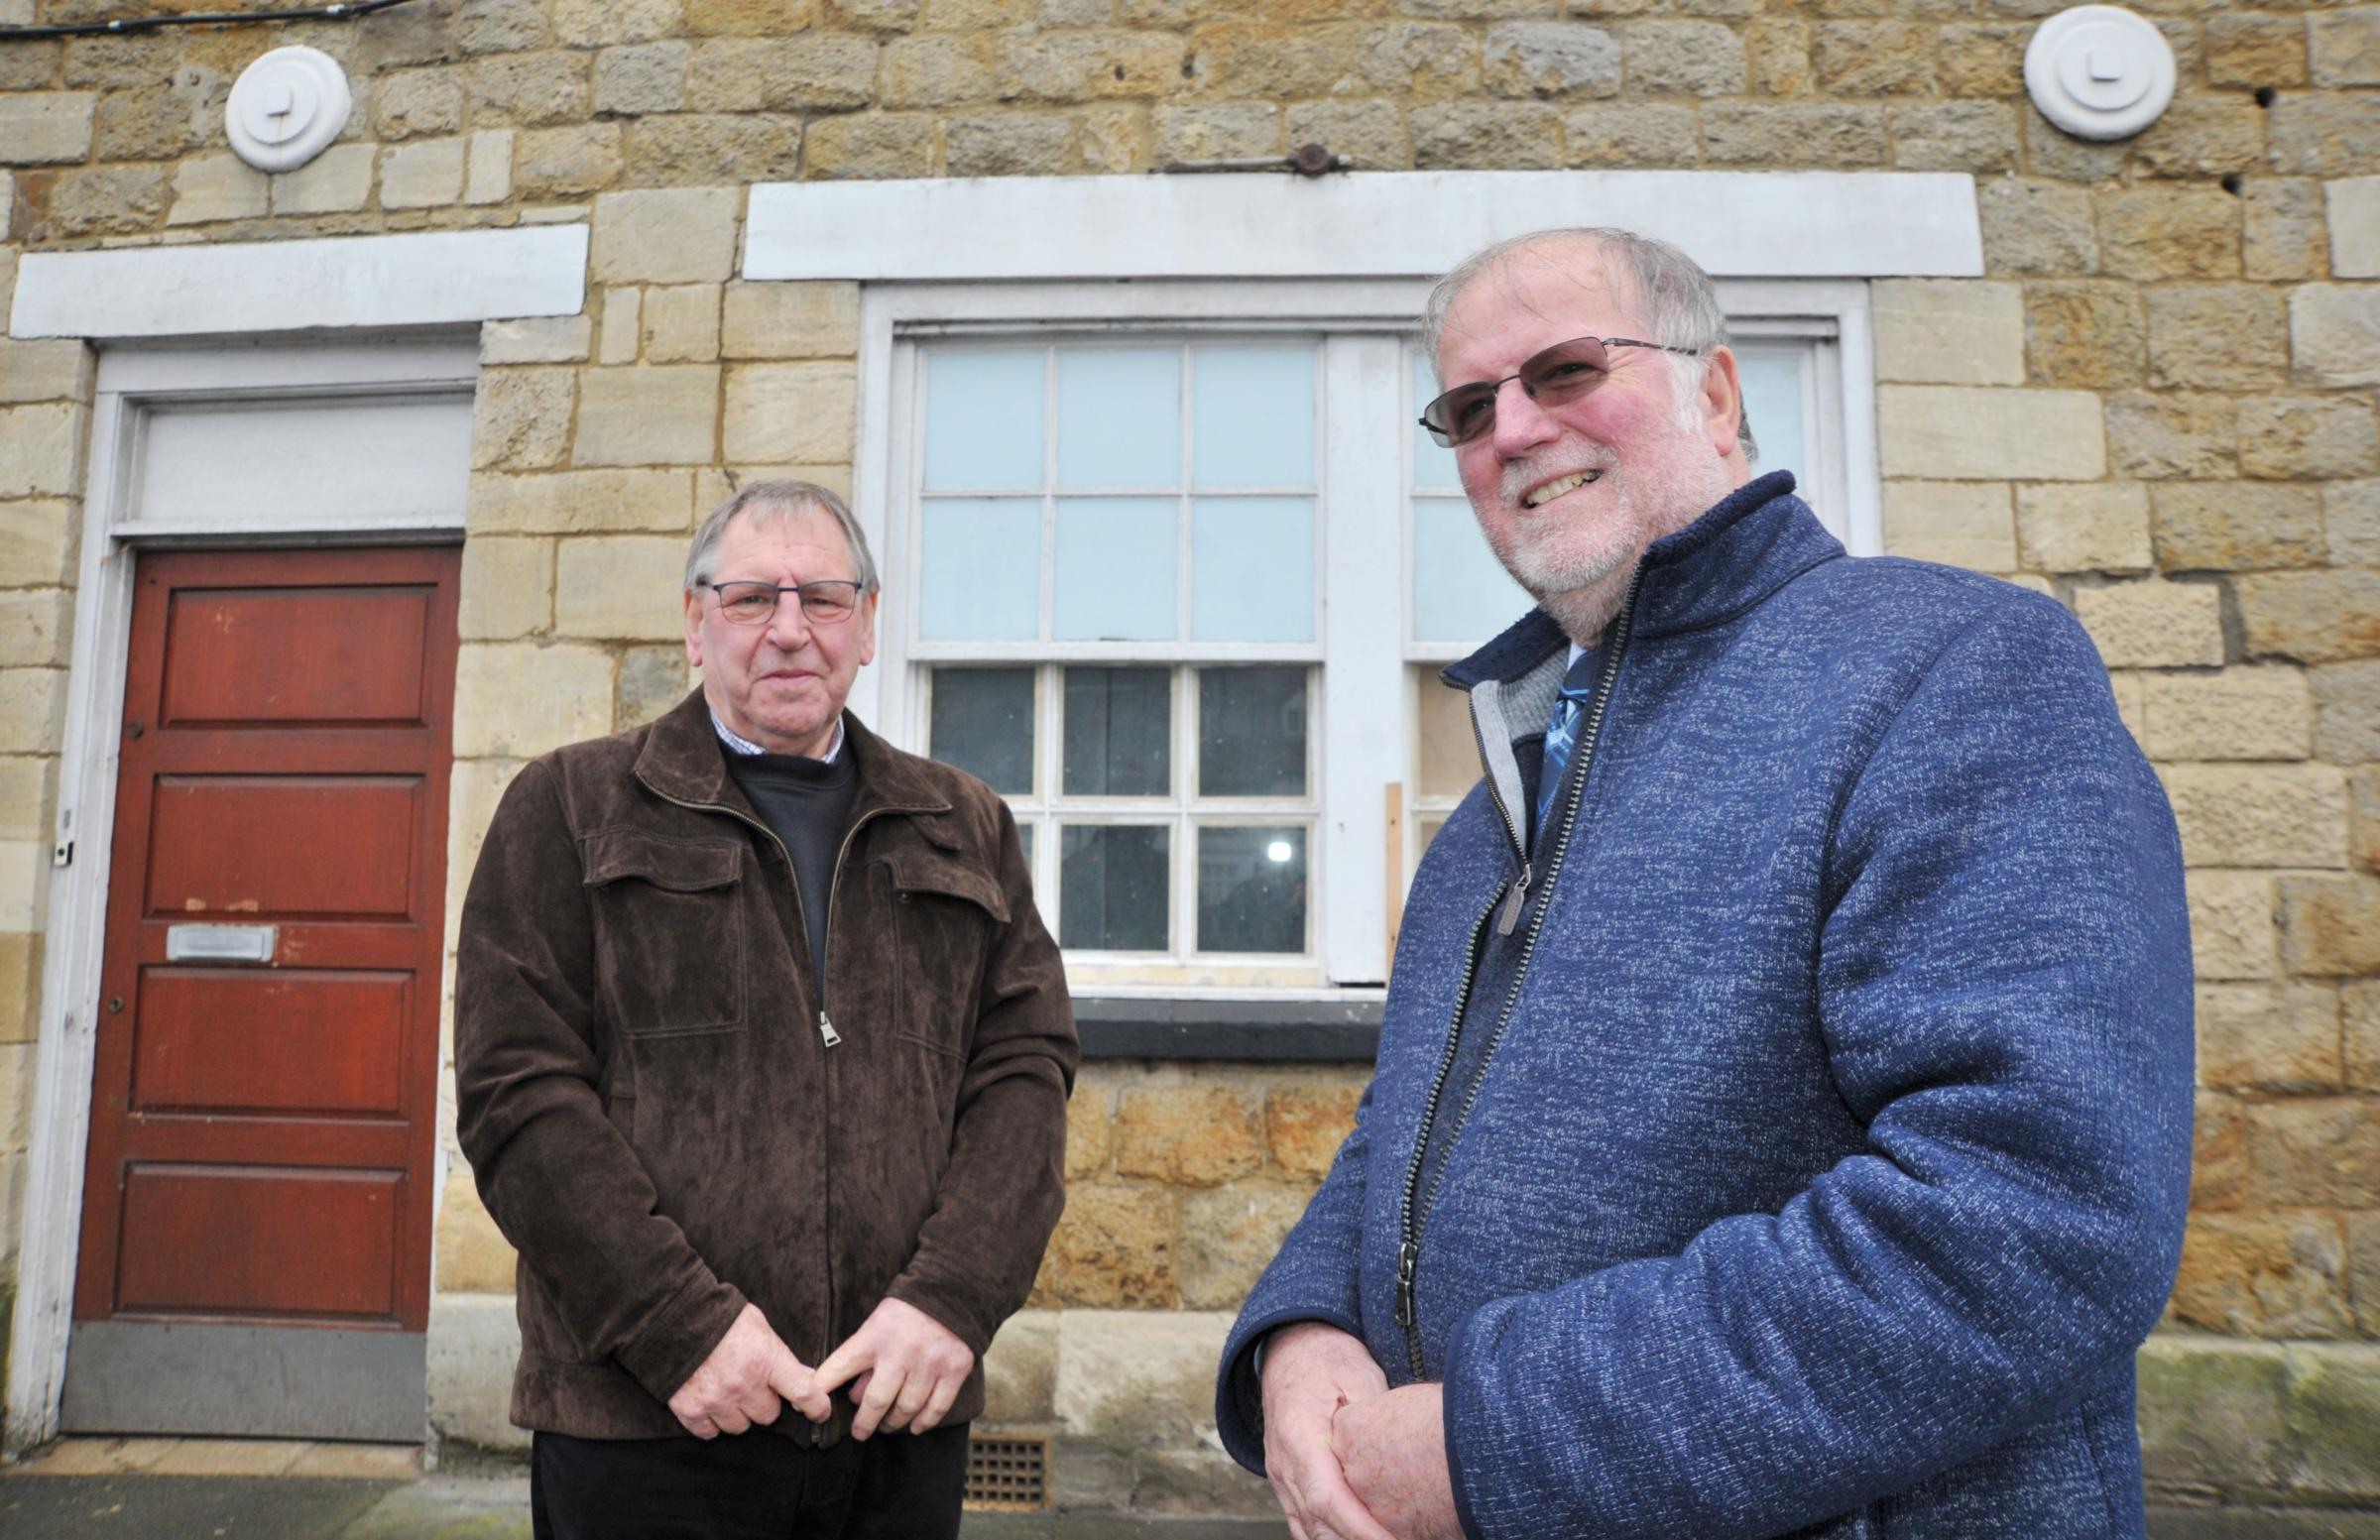 Highworth Community Partnership Group want to transform the old Loyds bank building into museum & tourist info centre..left 2 right .Pic - Keith Smith ( chair of Highworth Community group ), Phil Baker ( Chair of Highworth tourist group ).Date 23/11/1